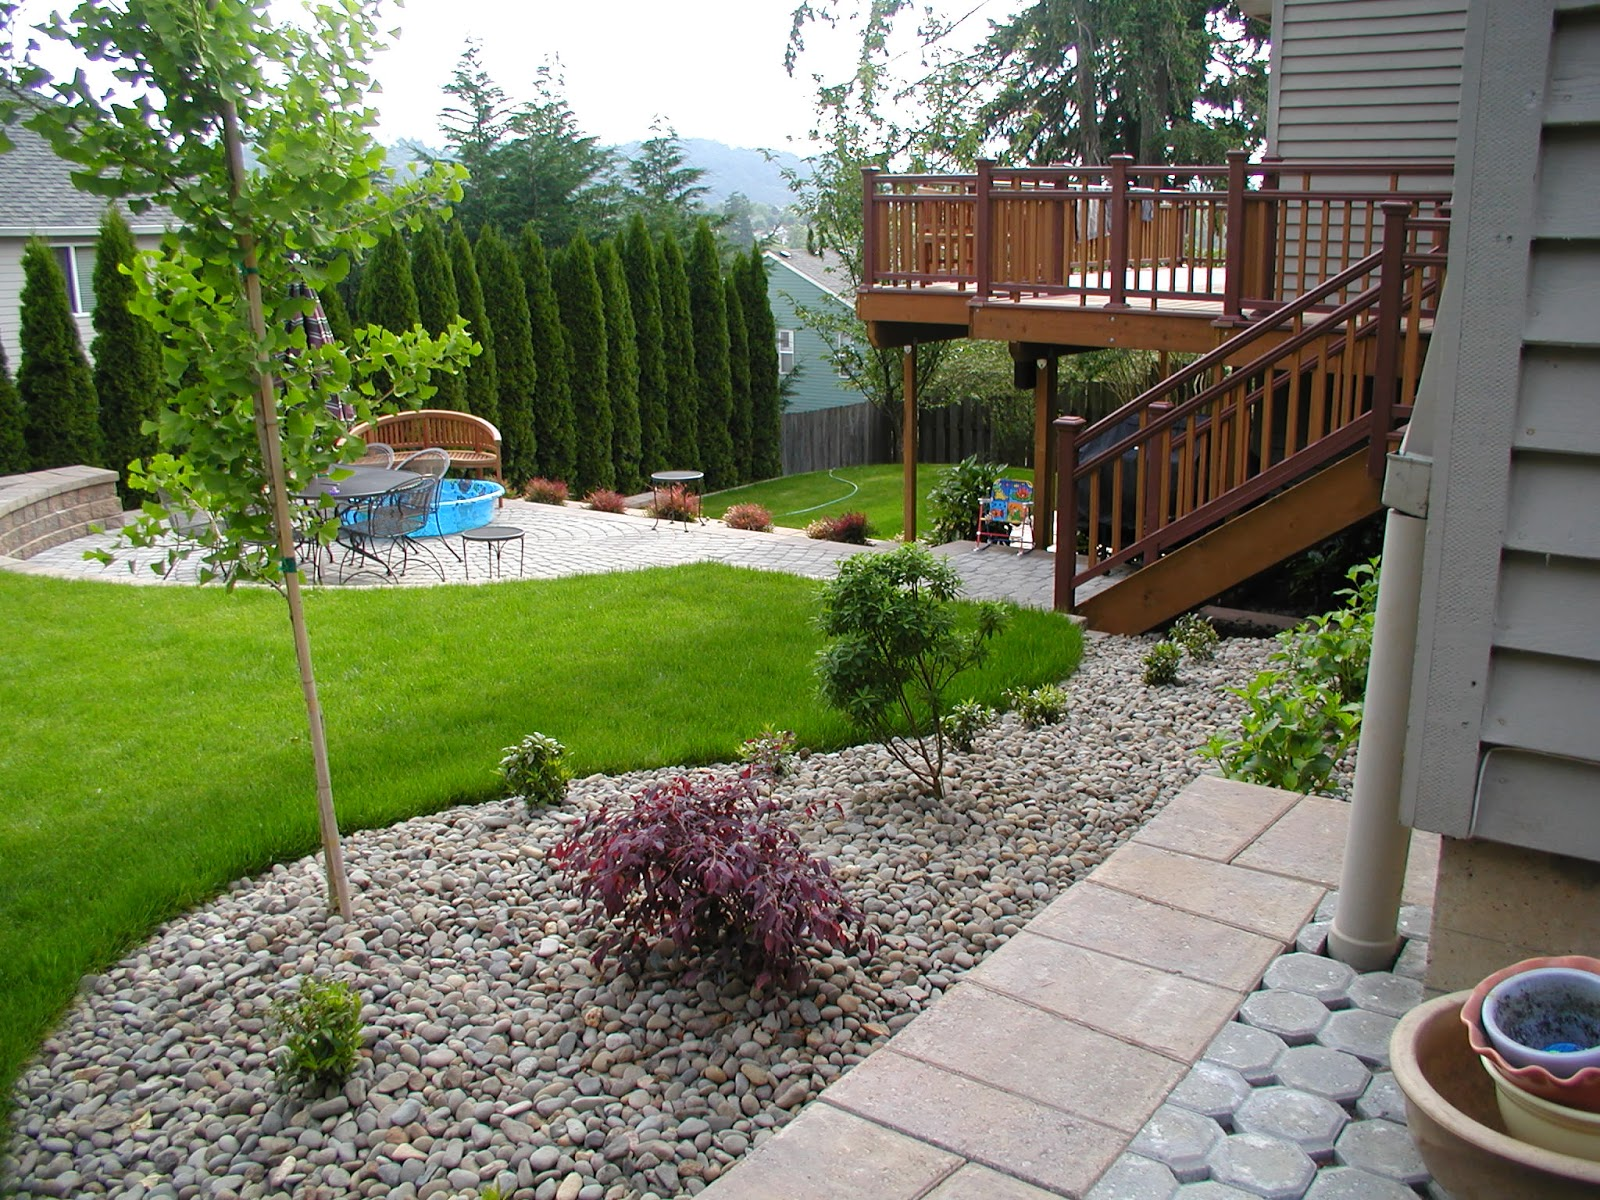 Decorating The Garden With Less Money   For Serious Savings. Decorating The Garden With Less Money   For Serious Savings   GOODIY